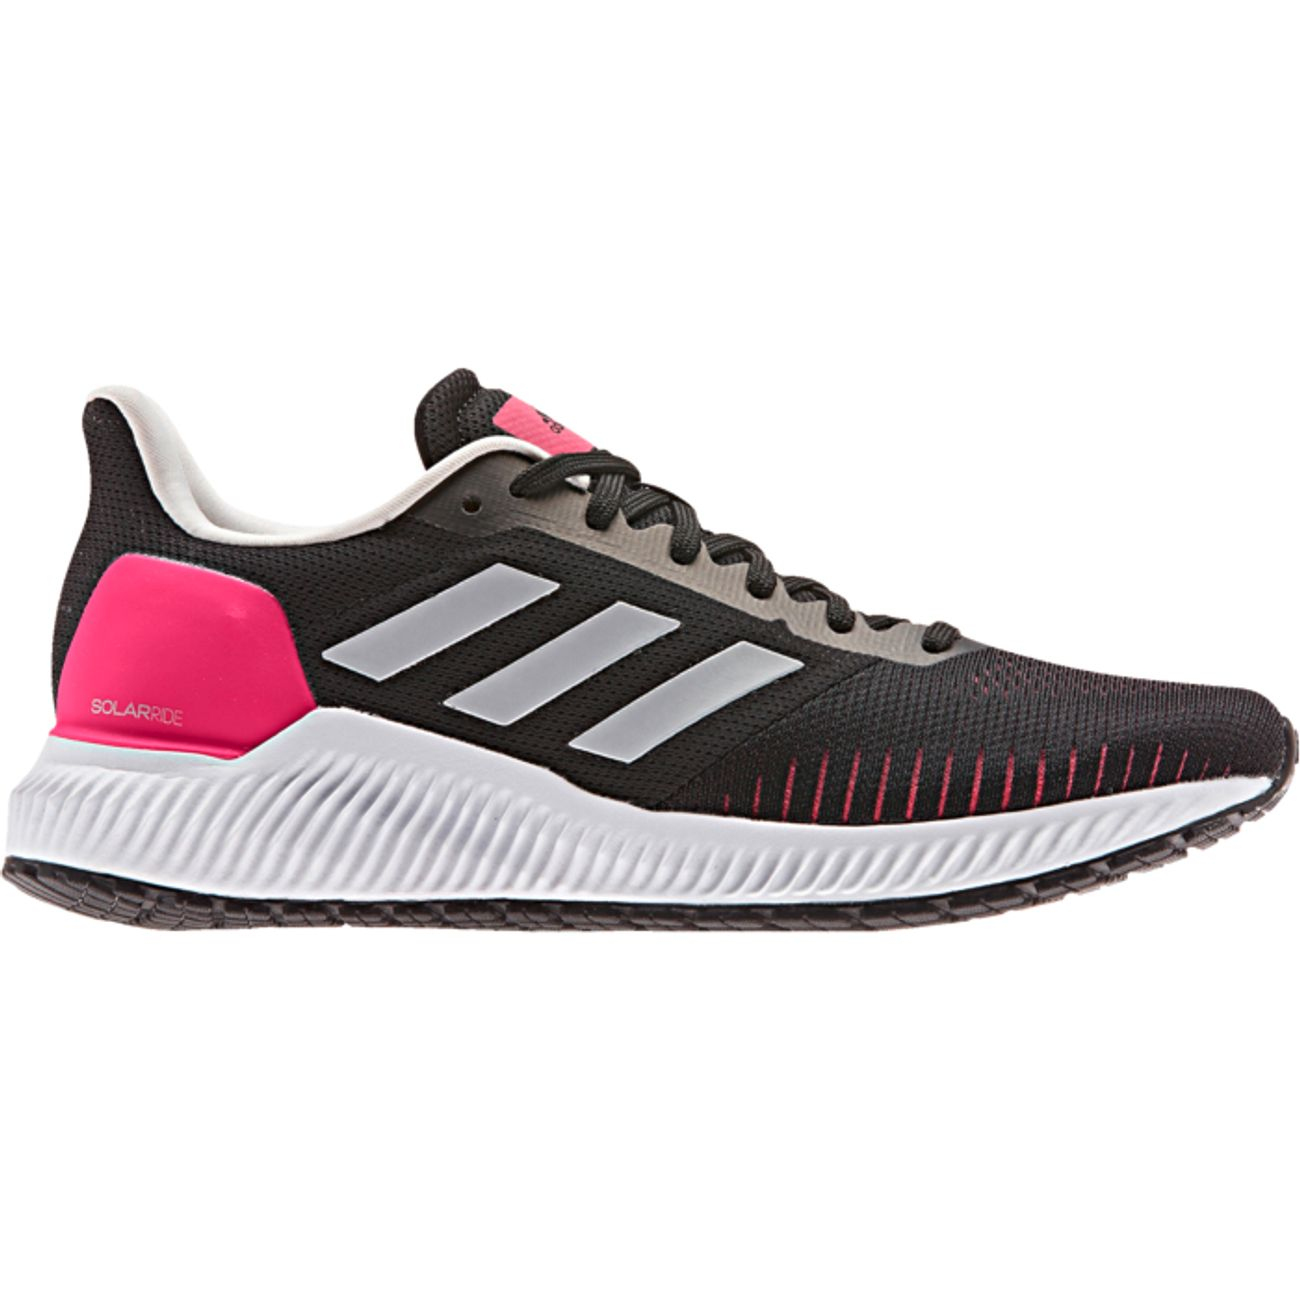 chaussures interieures velo femme adidas